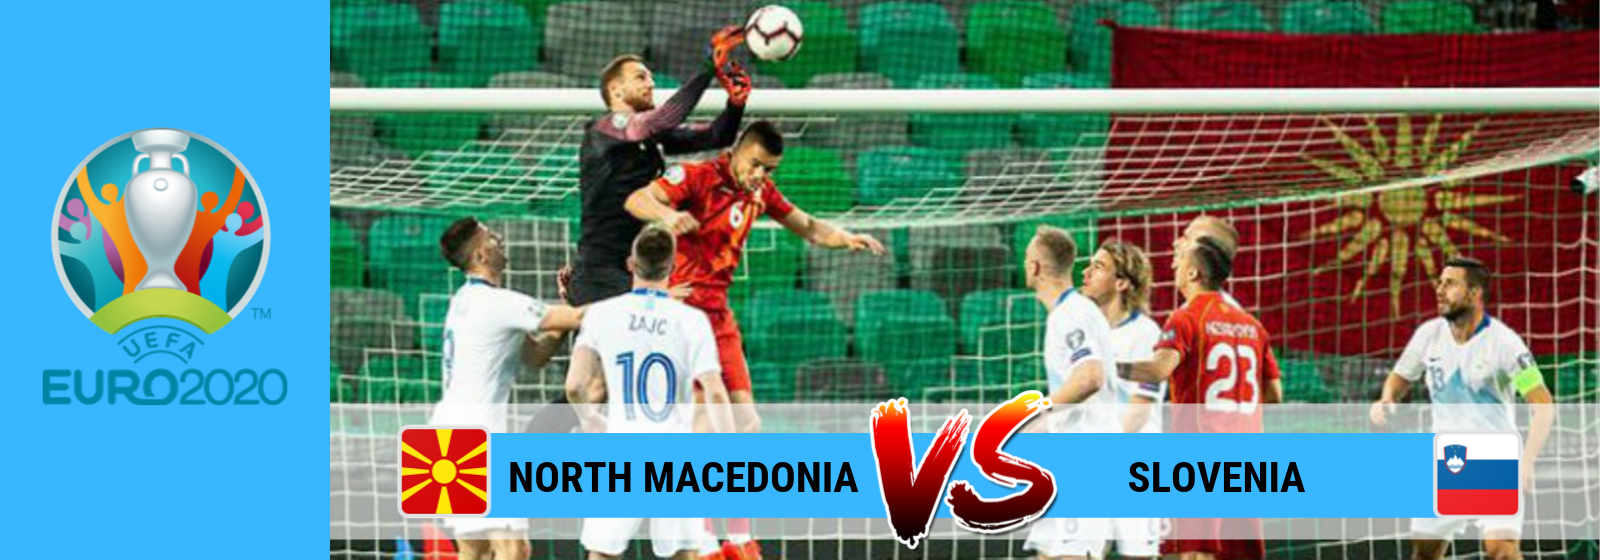 UEFA Euro 2020 North Macedonia Vs. Slovenia Asian Connect